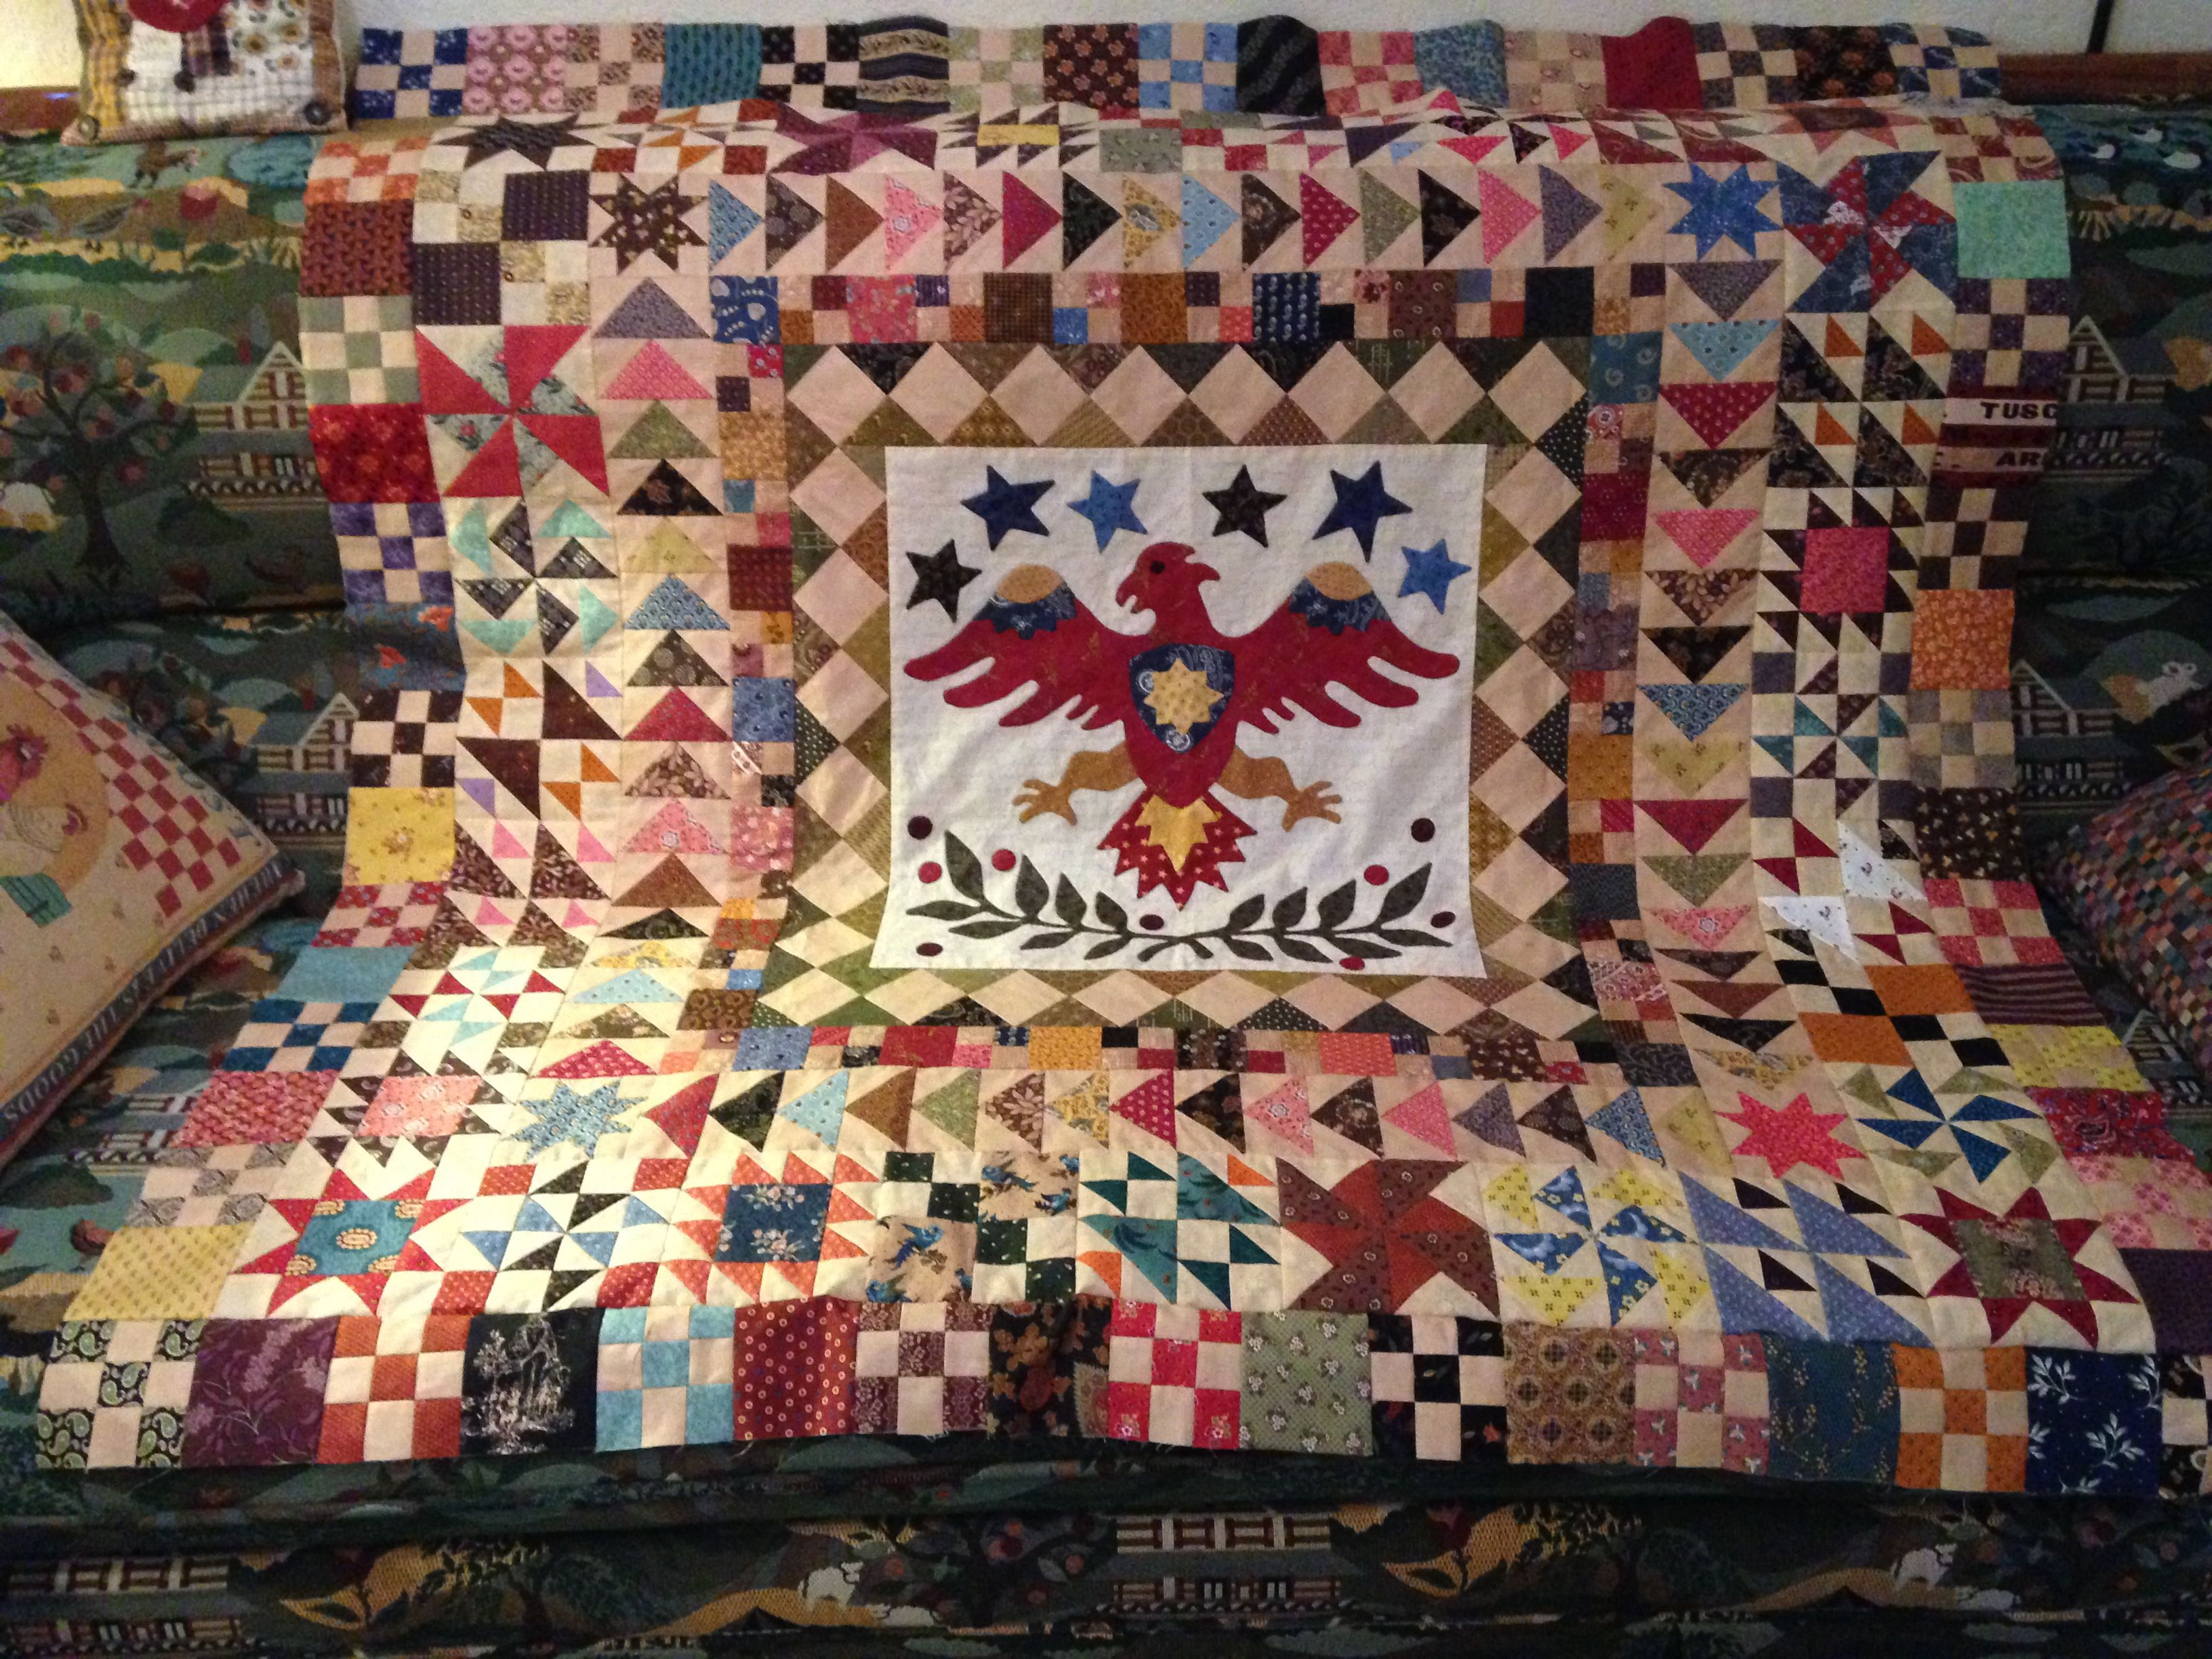 A work in progress ... Mainly used Civil War reproduction fabrics. Only one more row of pieced squares to go and then I can finish it!  That should only take another three years!